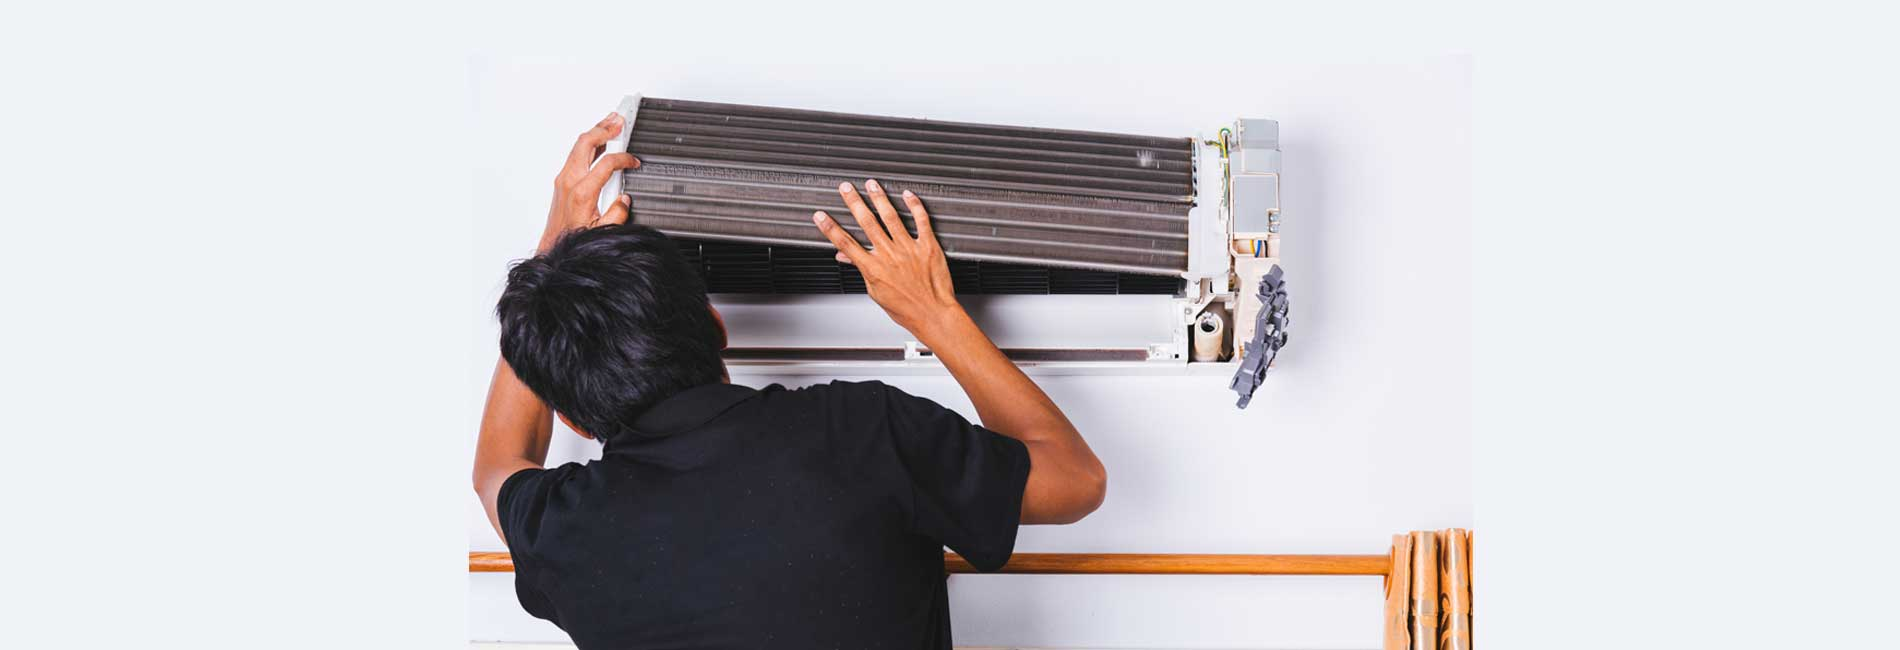 Bluestar Air Conditioner Repair in Manali